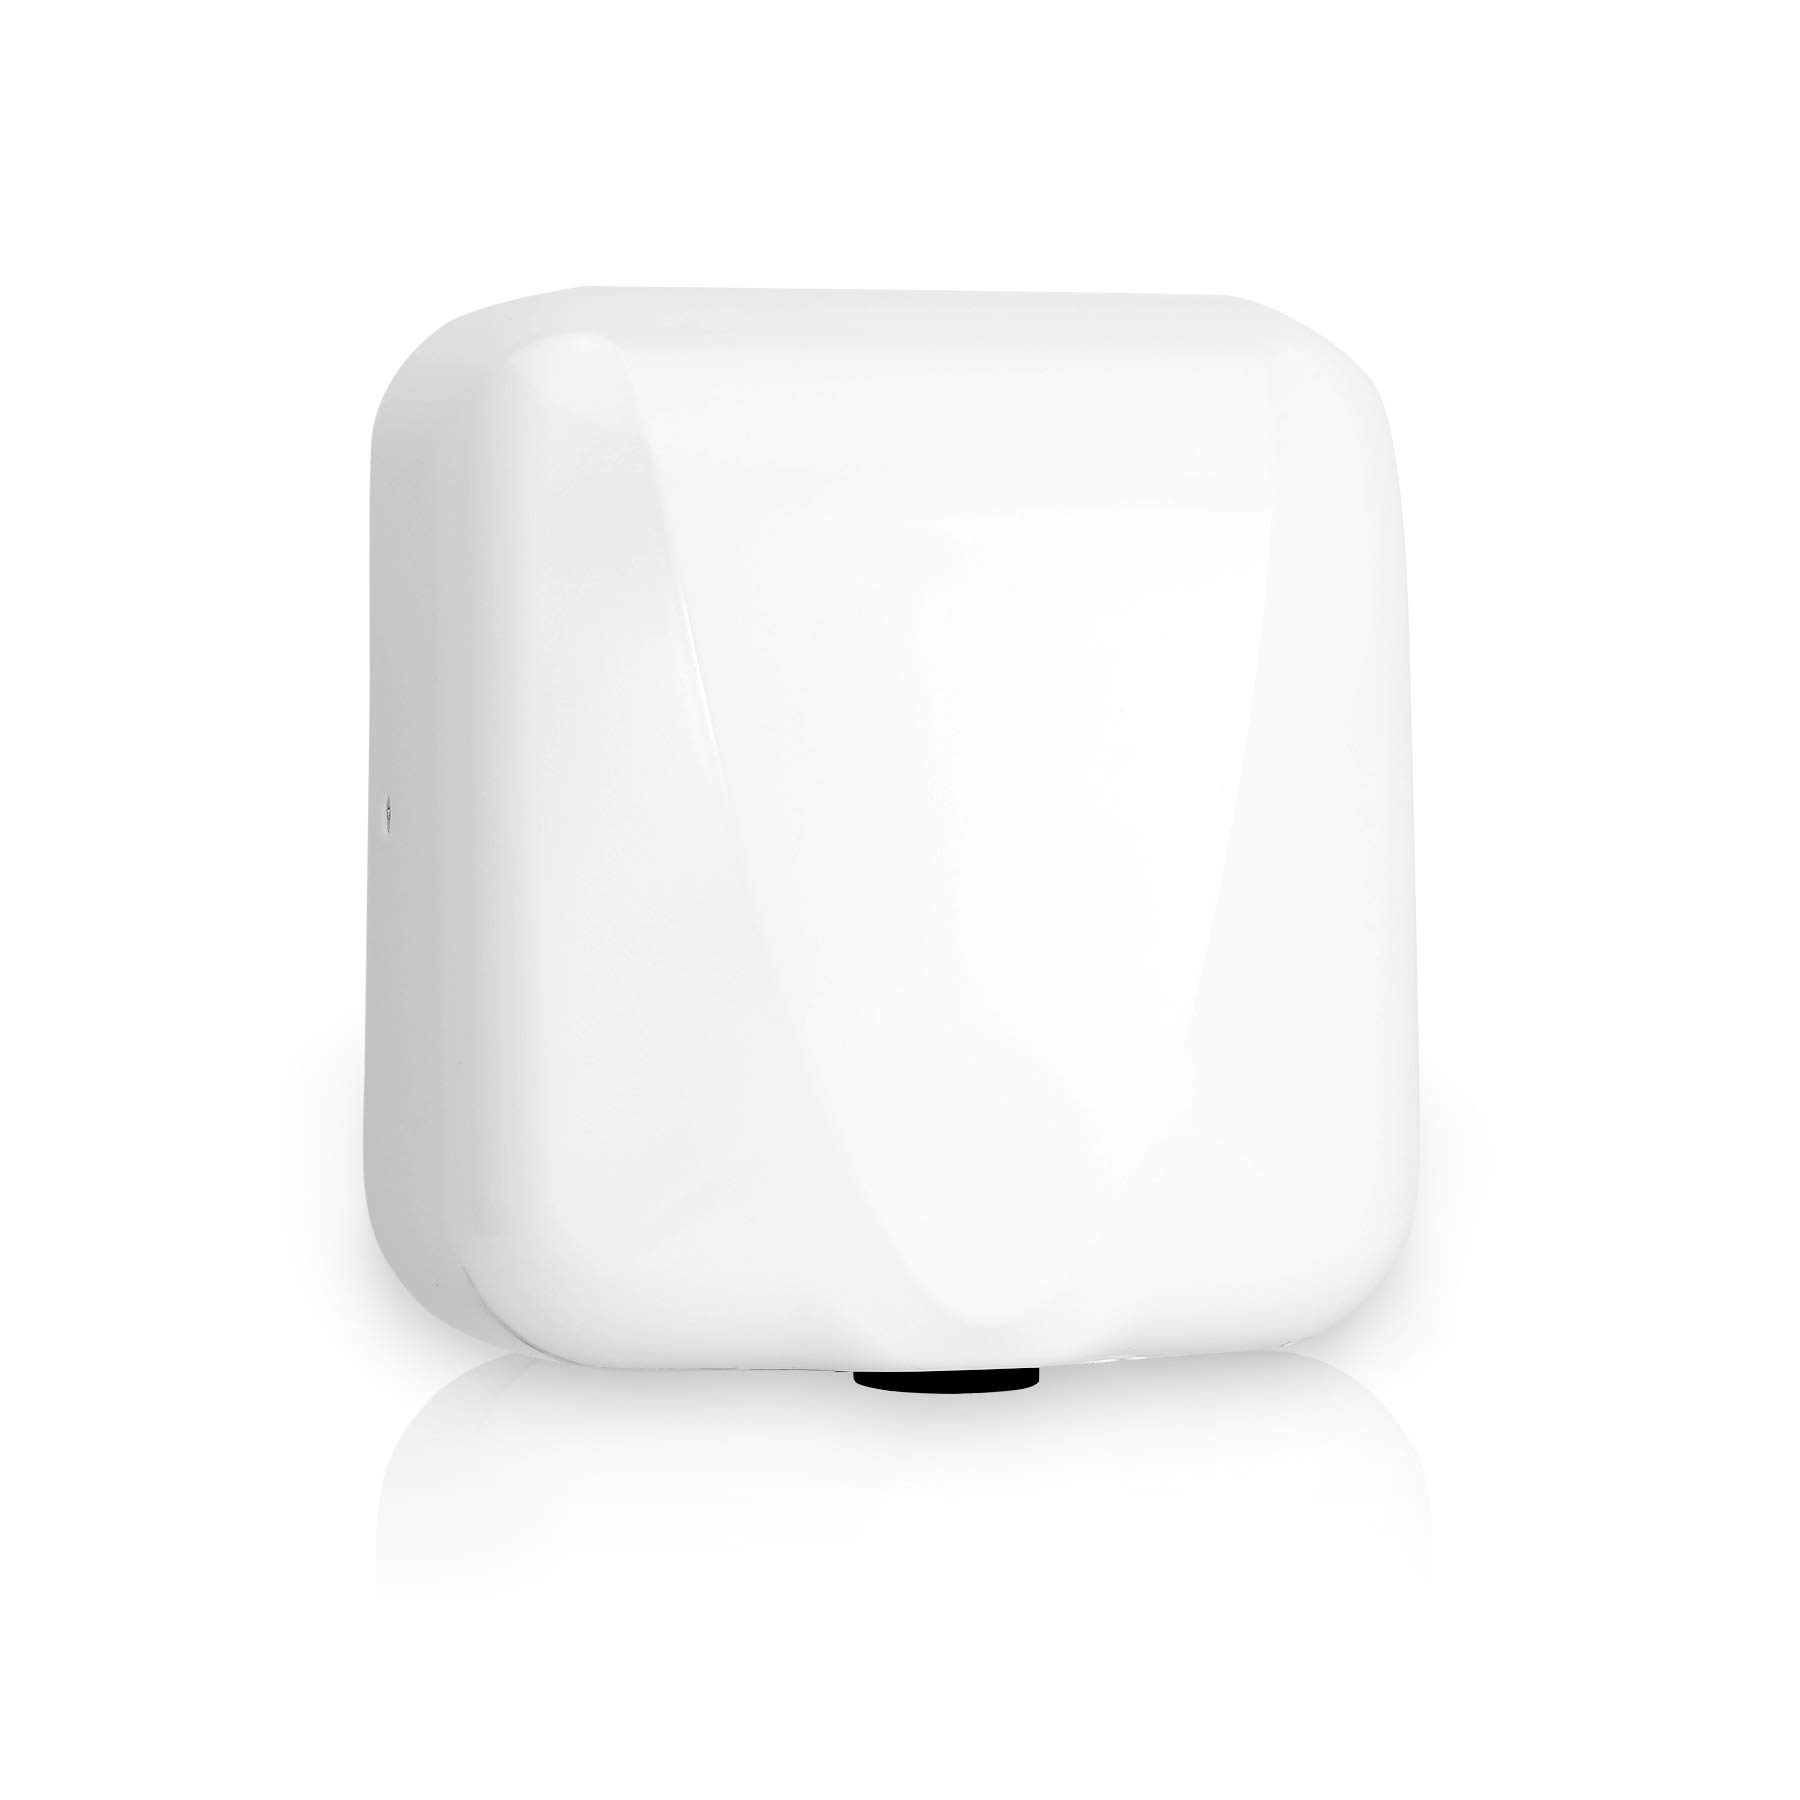 VALENS Hand Dryer Commercial for Bathroom, Automatic Hand Dryers 224 mph with HEPA Filter, High Speed 1800W, Hot or Cold Air Available, White (1 pc) by VALENS